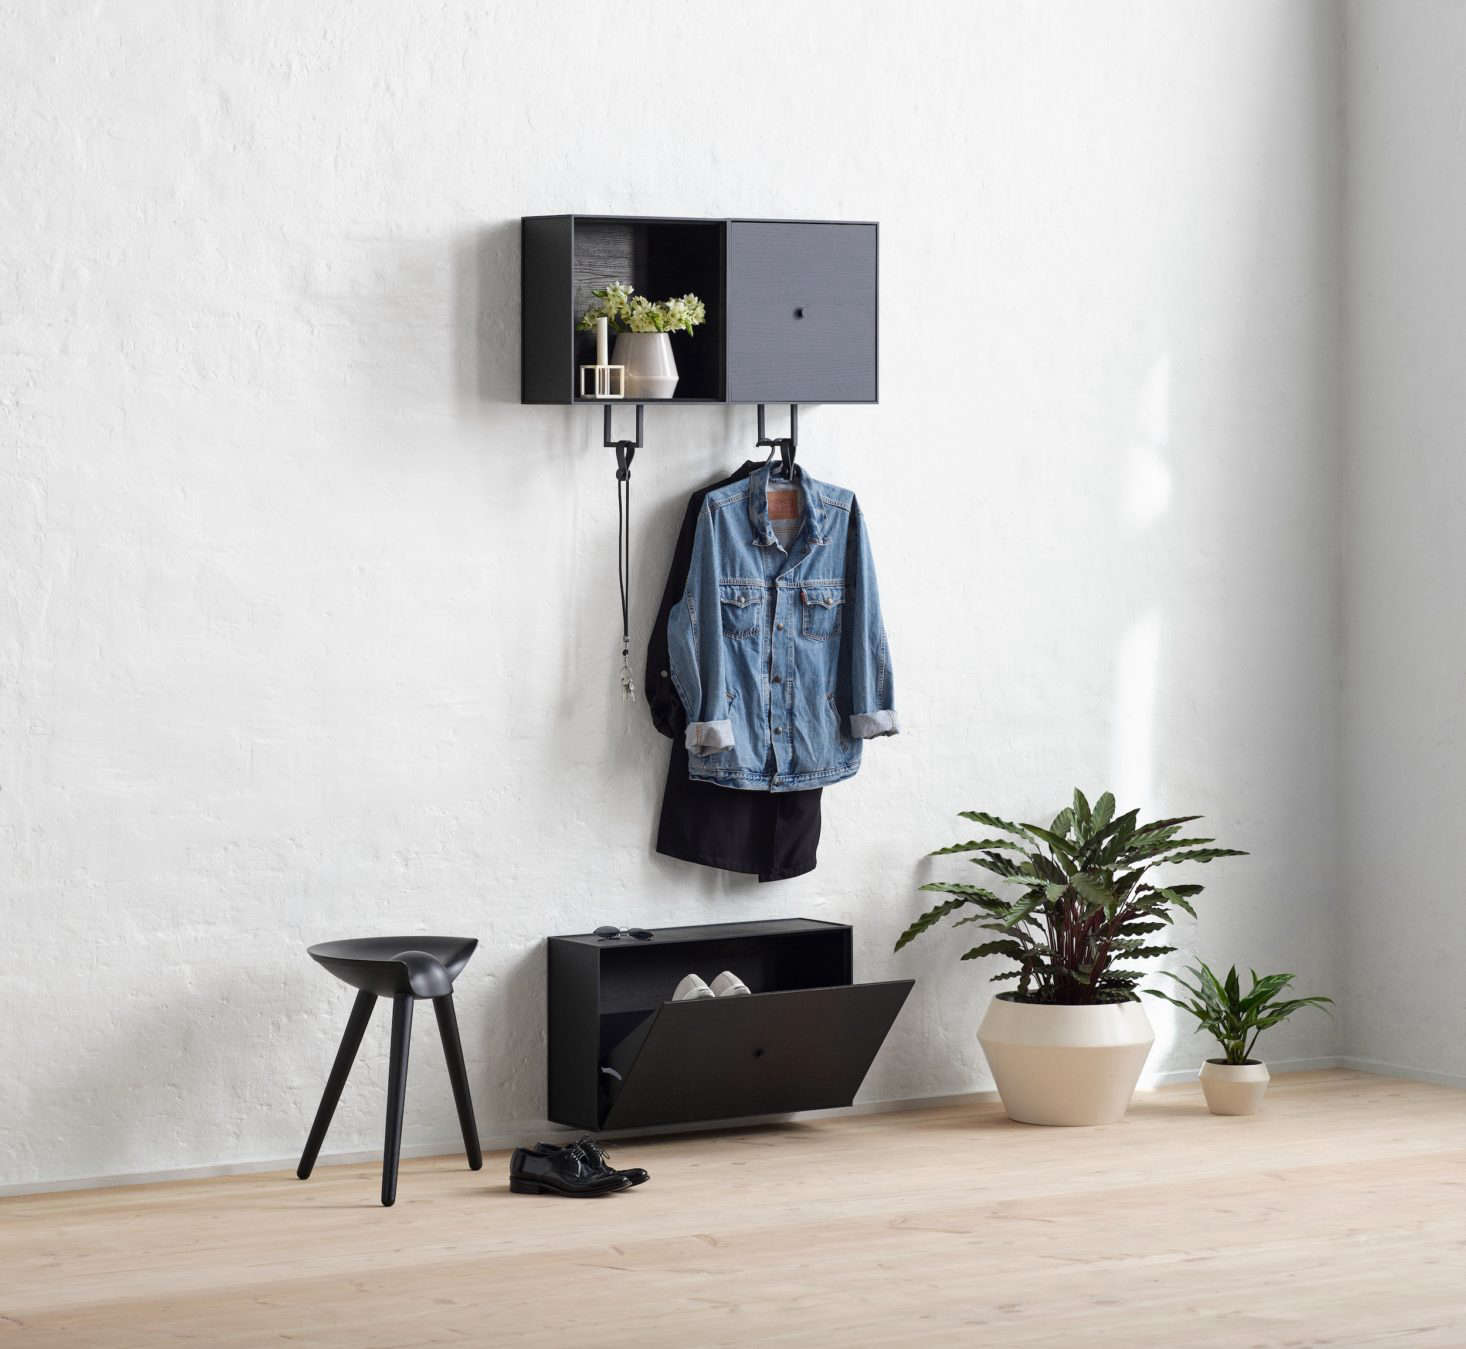 New Frame Rails, available in three sizes, attach to the bottom of the Frame storage cabinets. Also new to the collection: the Frame Hanger and leather Stropp Loop, for hanging coats and clothes from the rails.